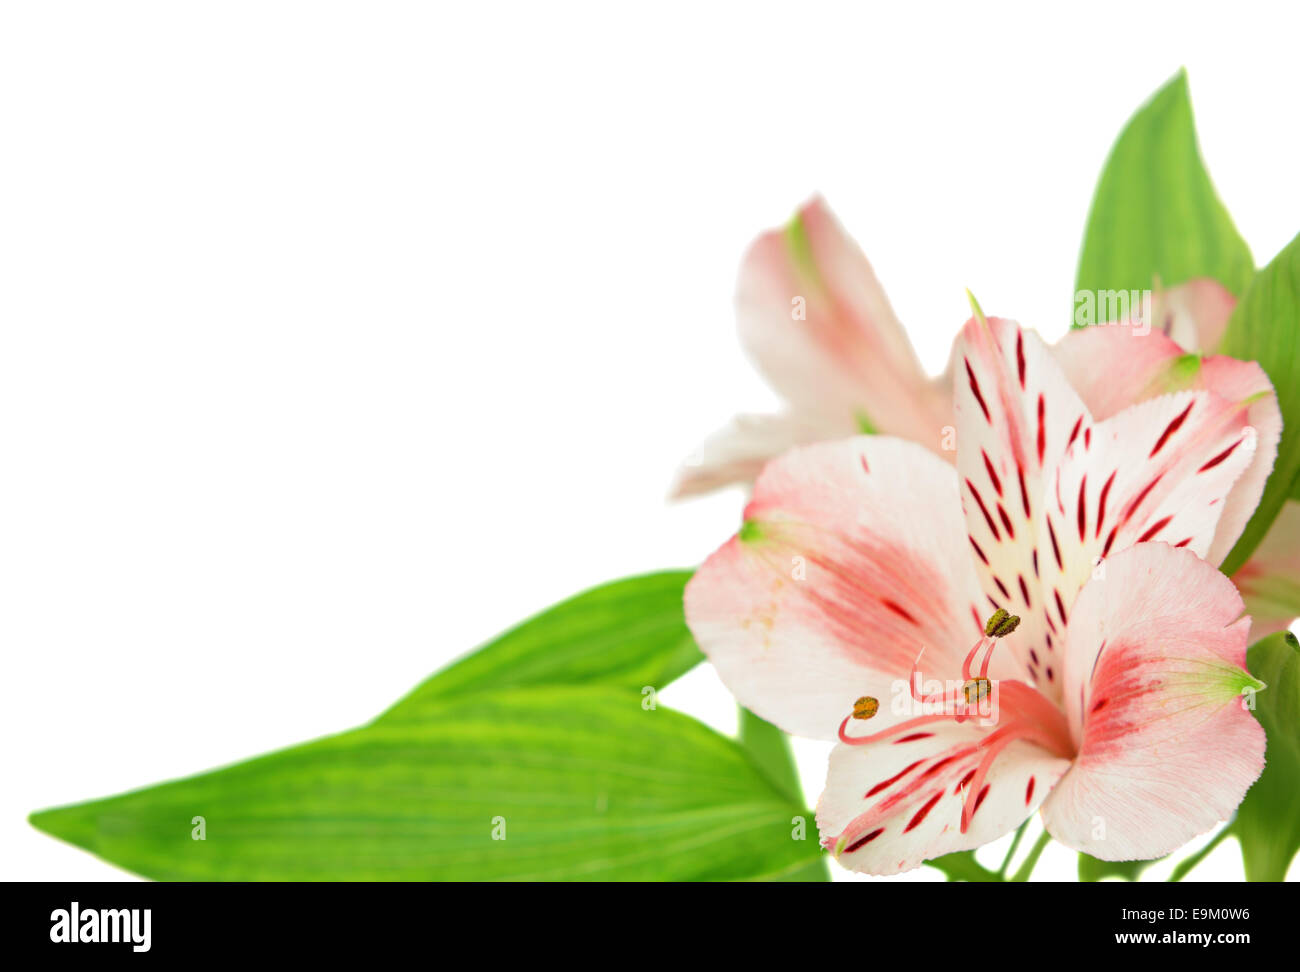 Alstroemeria flowers stock photos alstroemeria flowers stock alstroemeria flowers isolated on white stock image mightylinksfo Gallery